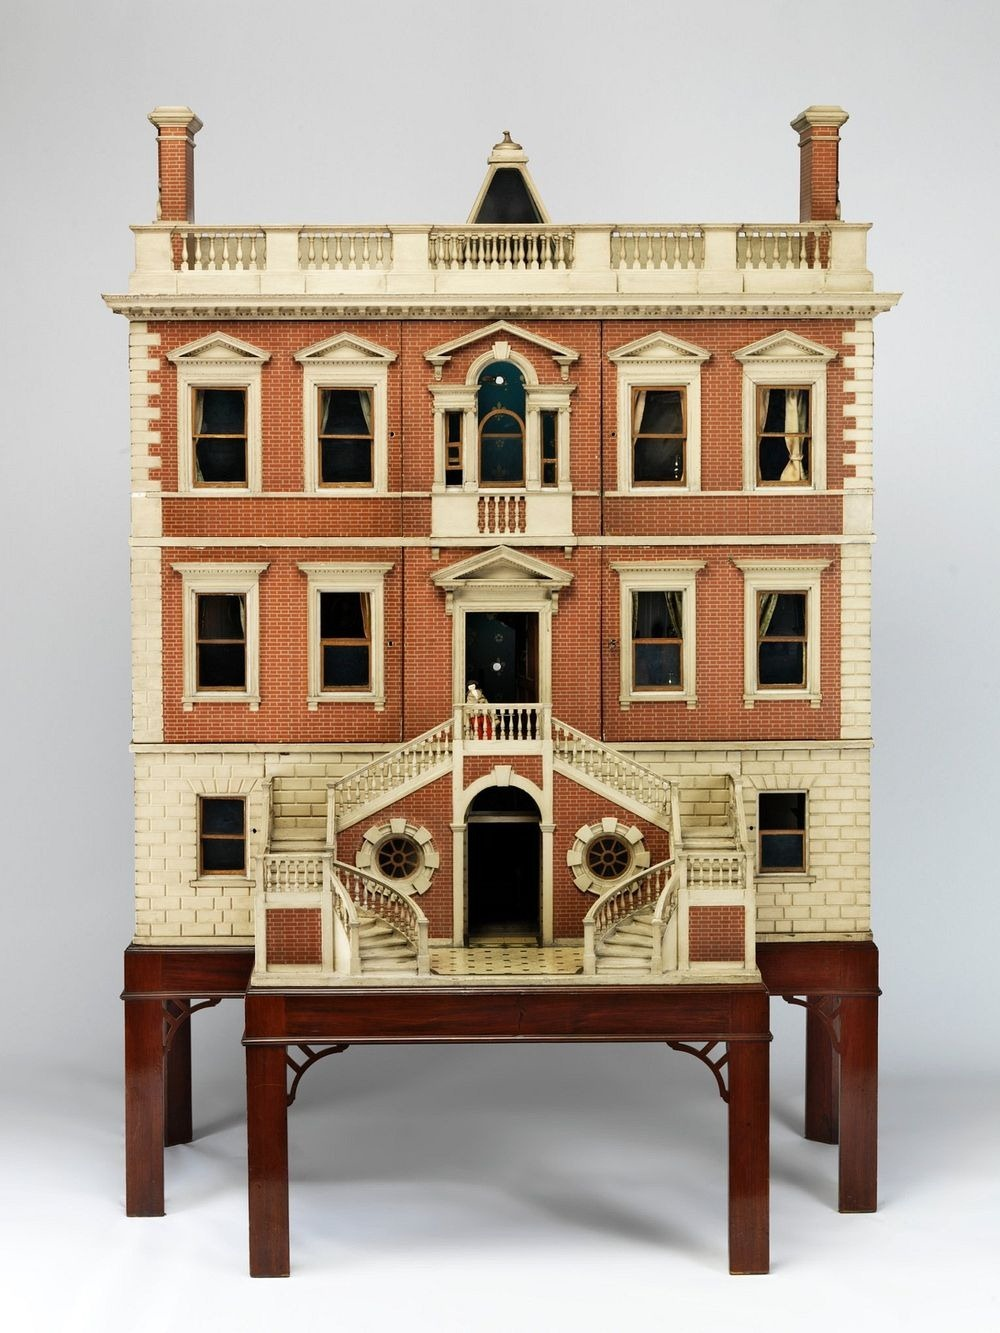 small-stories-dollhouse-1